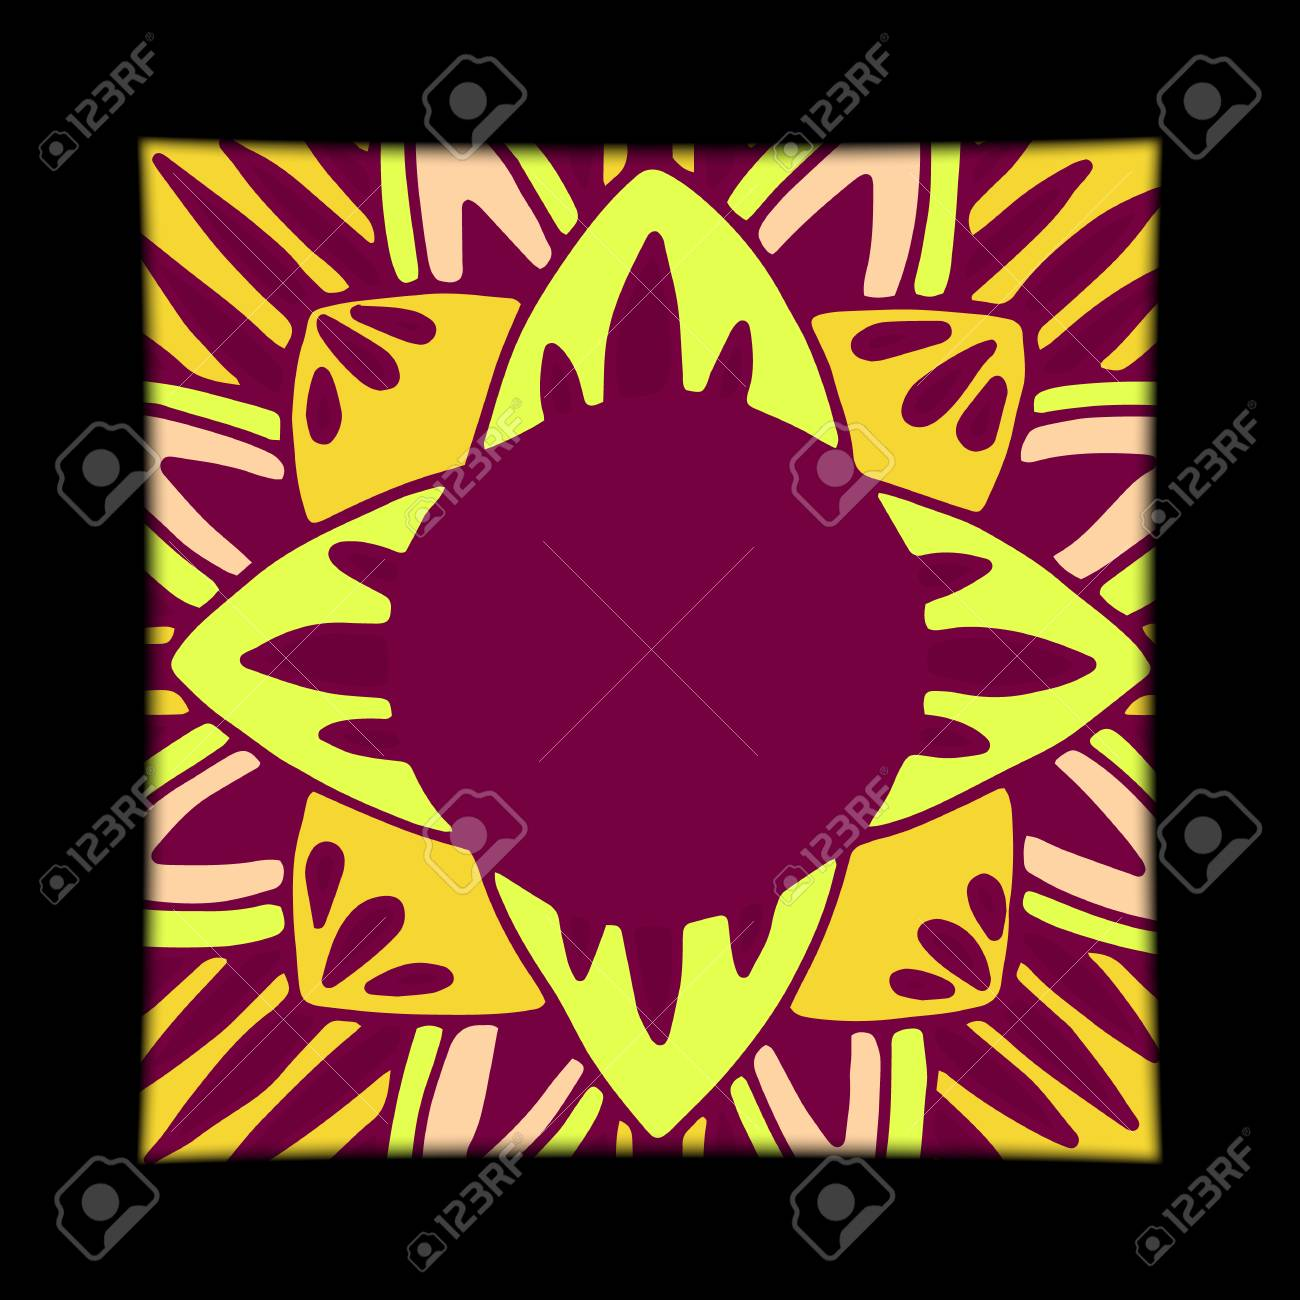 Flower mandala tiles in hand drawn style for prints, fabric and